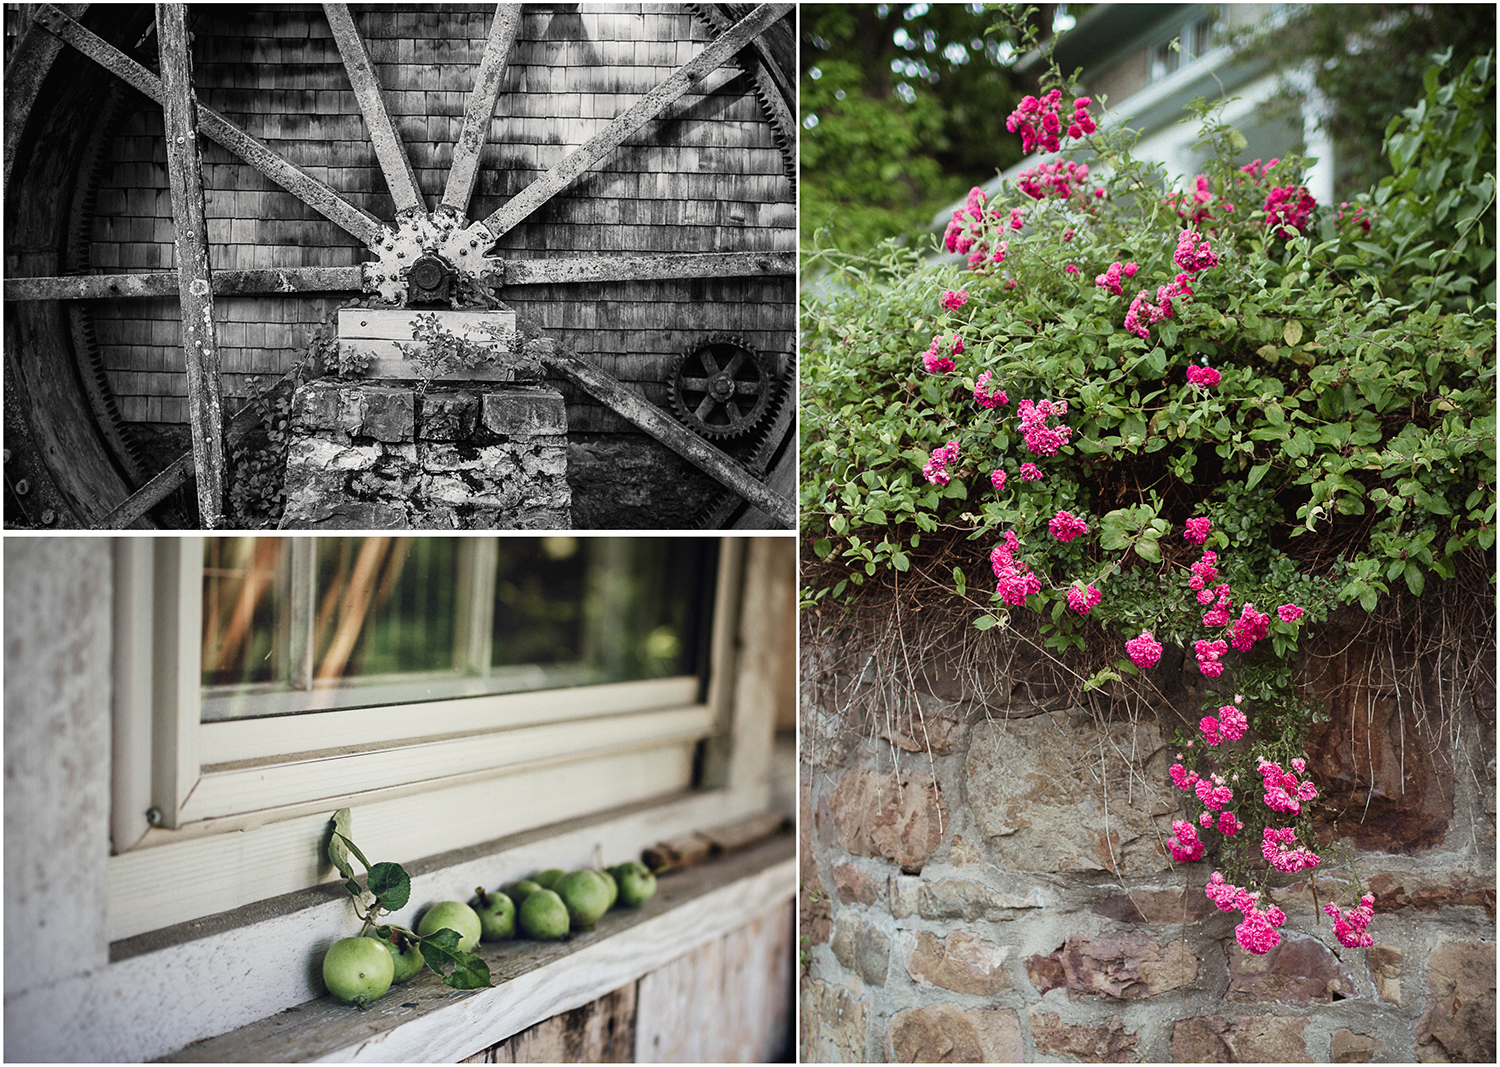 waterwheel at the mill  crab apples  cascading roses